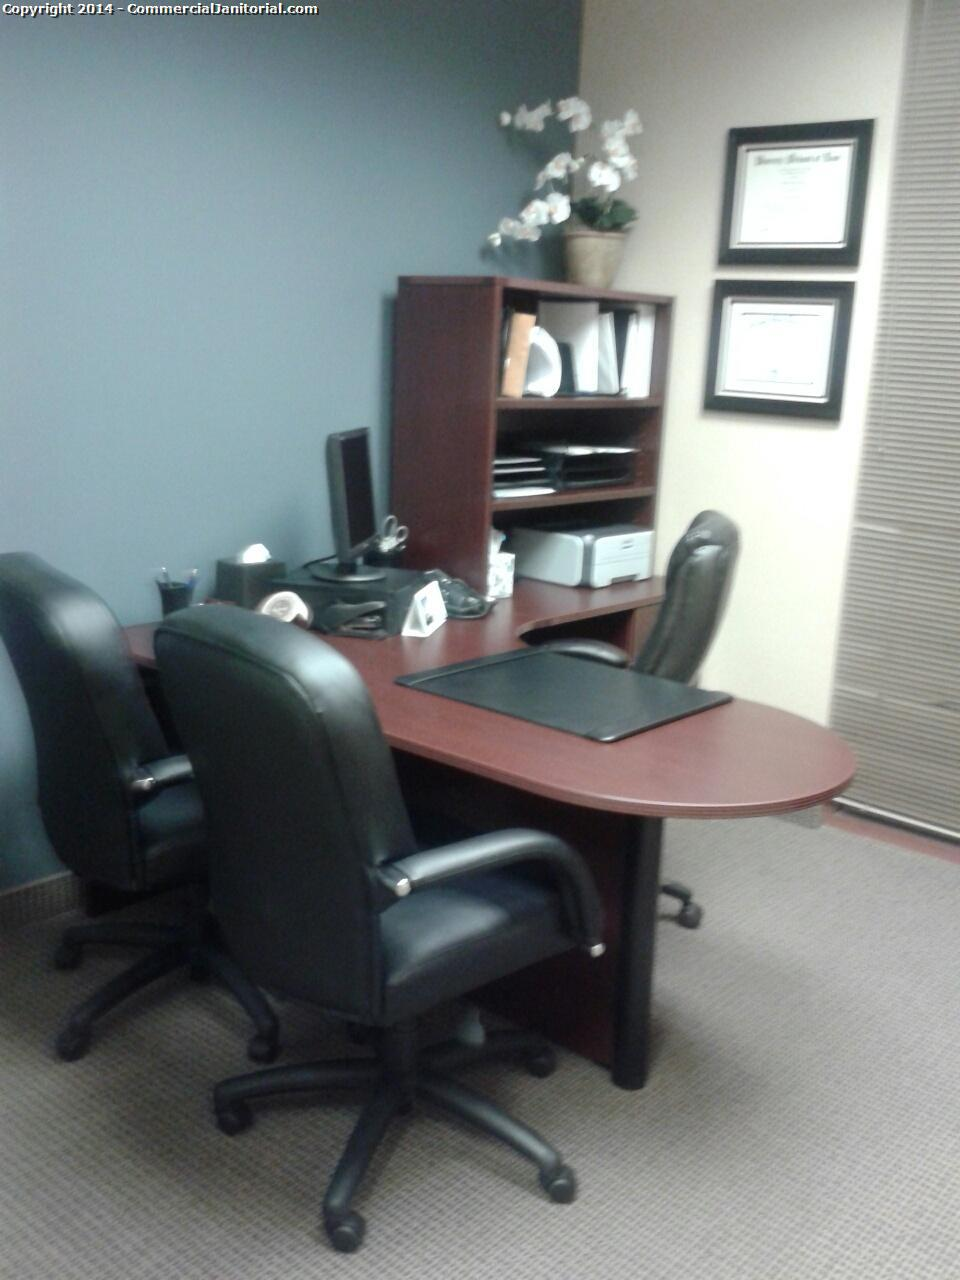 12/1- Ashley J. performed inspection  The crew did a great job of wiping down the touch points in the executive office.  The client will be thrilled.  Nice work team!!  Ashley J.